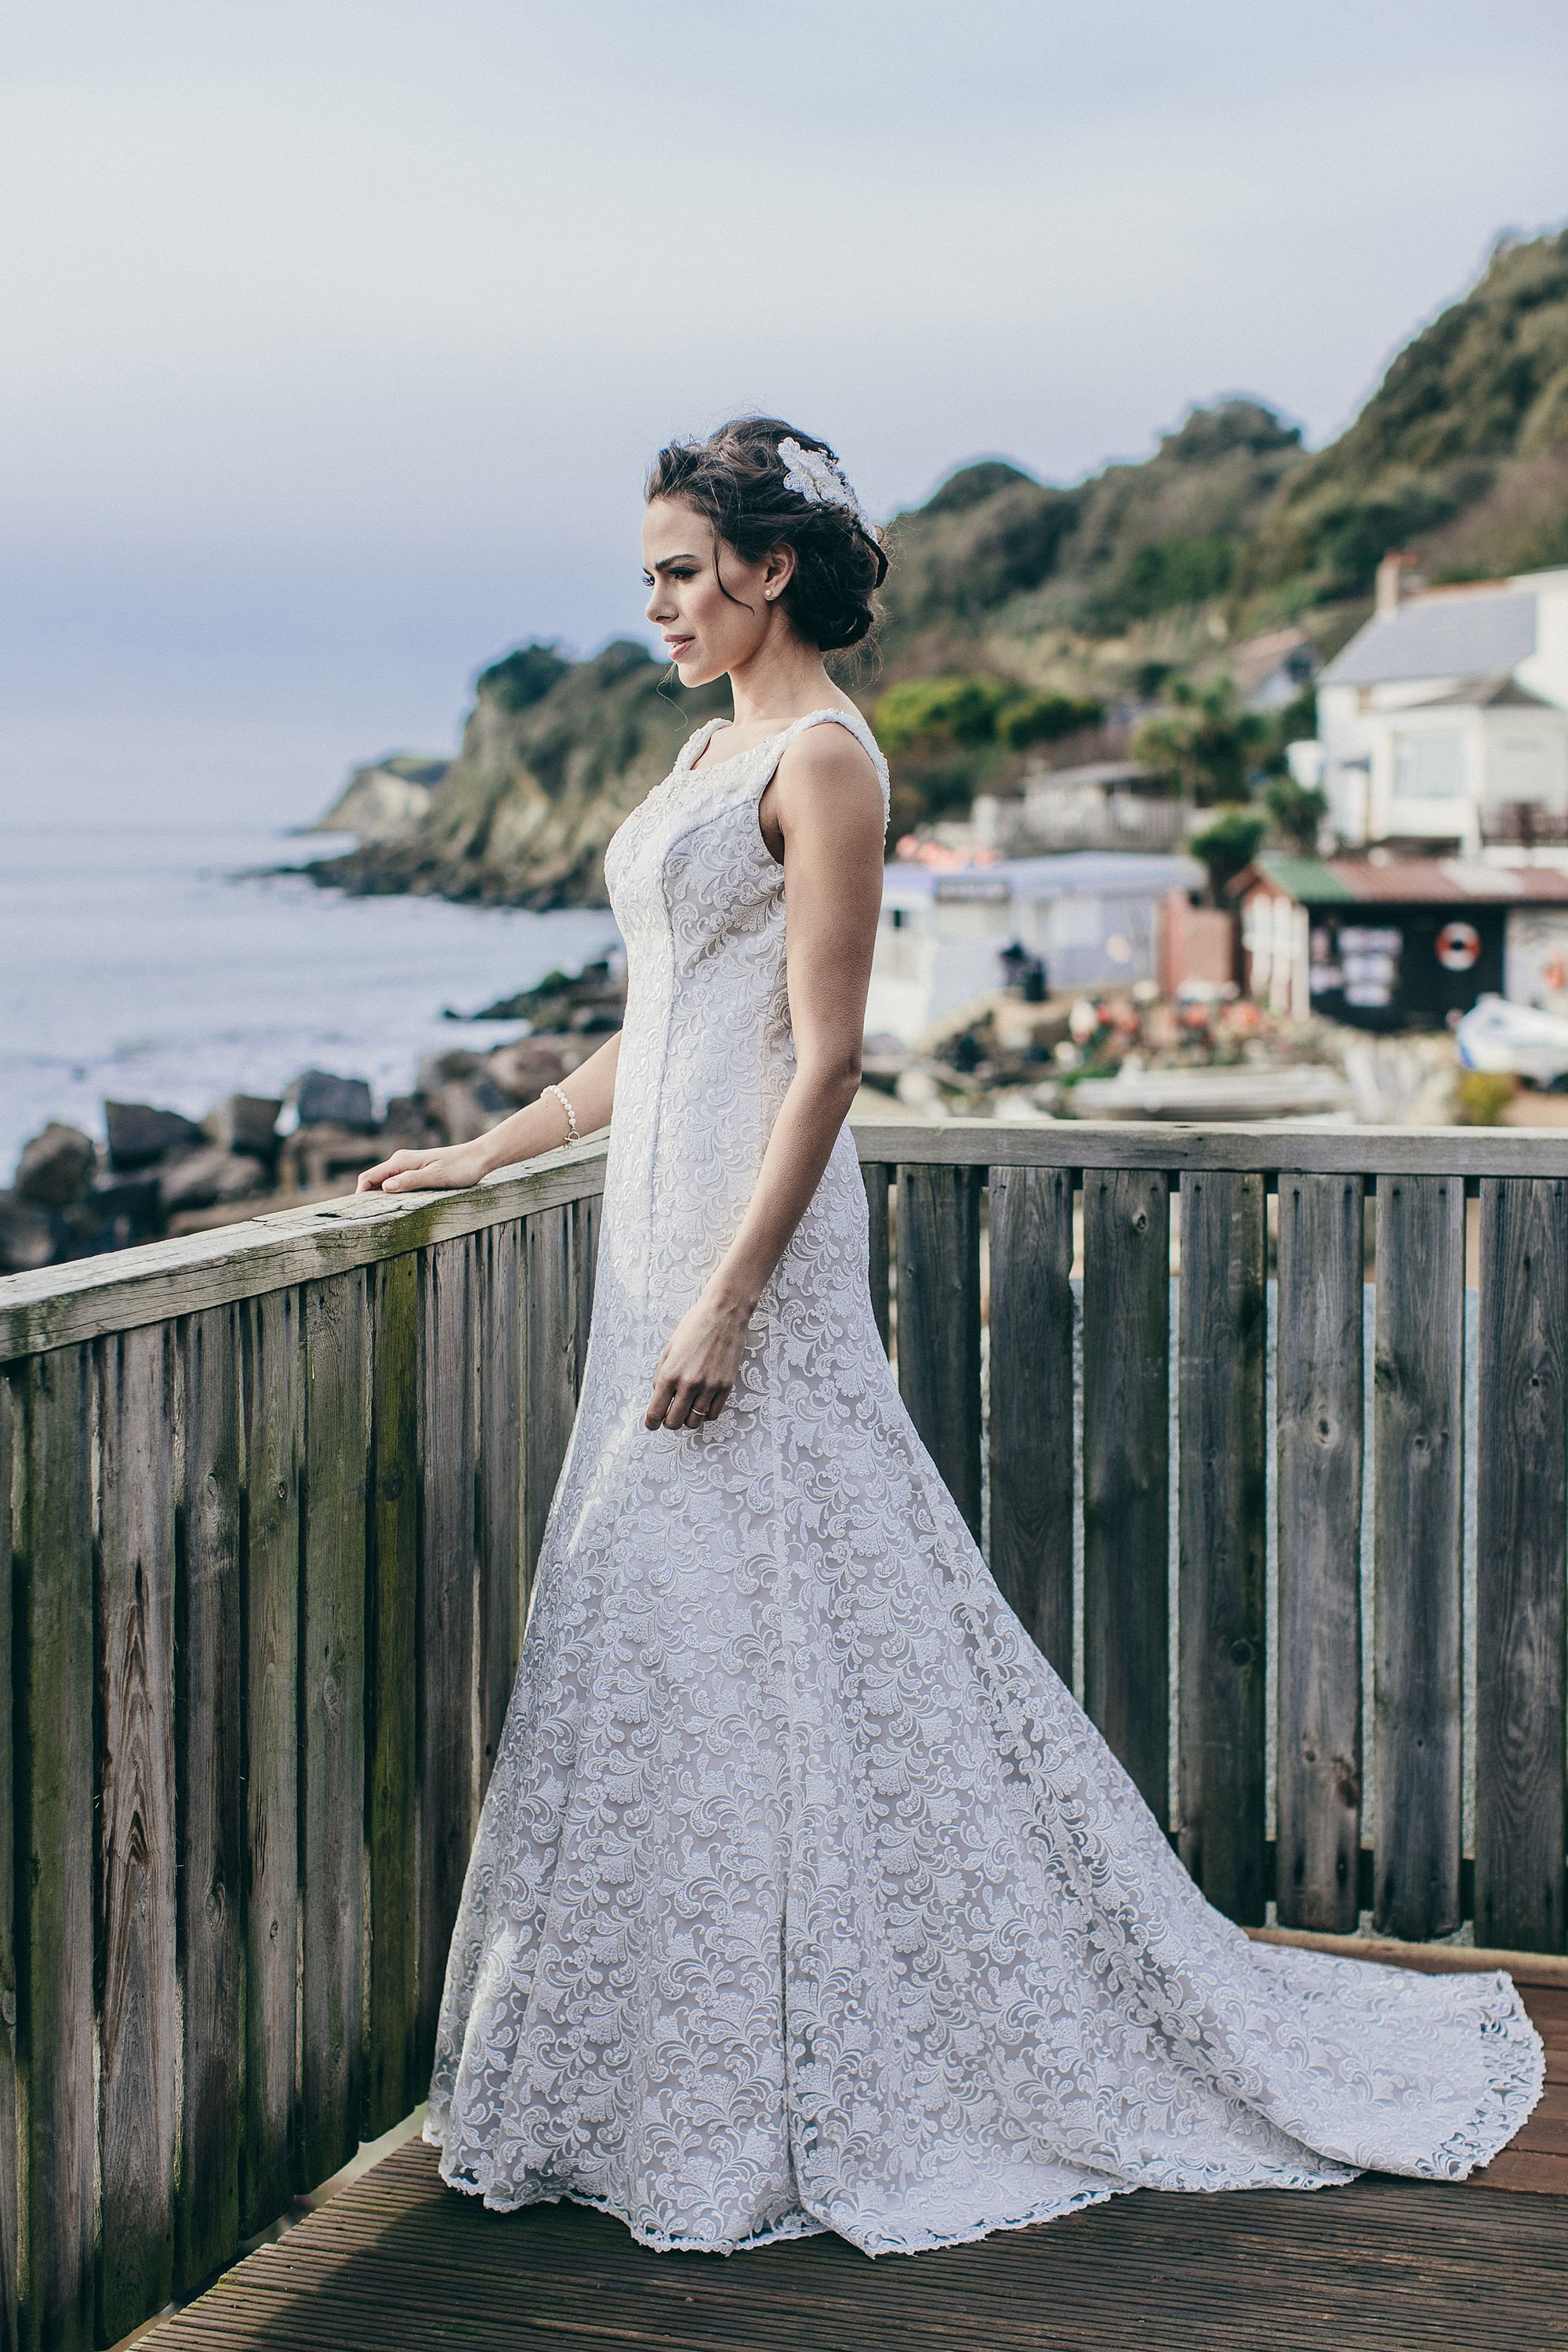 Tori by Forget me Not at Marianne Jessica. | Nautical Wedding ...